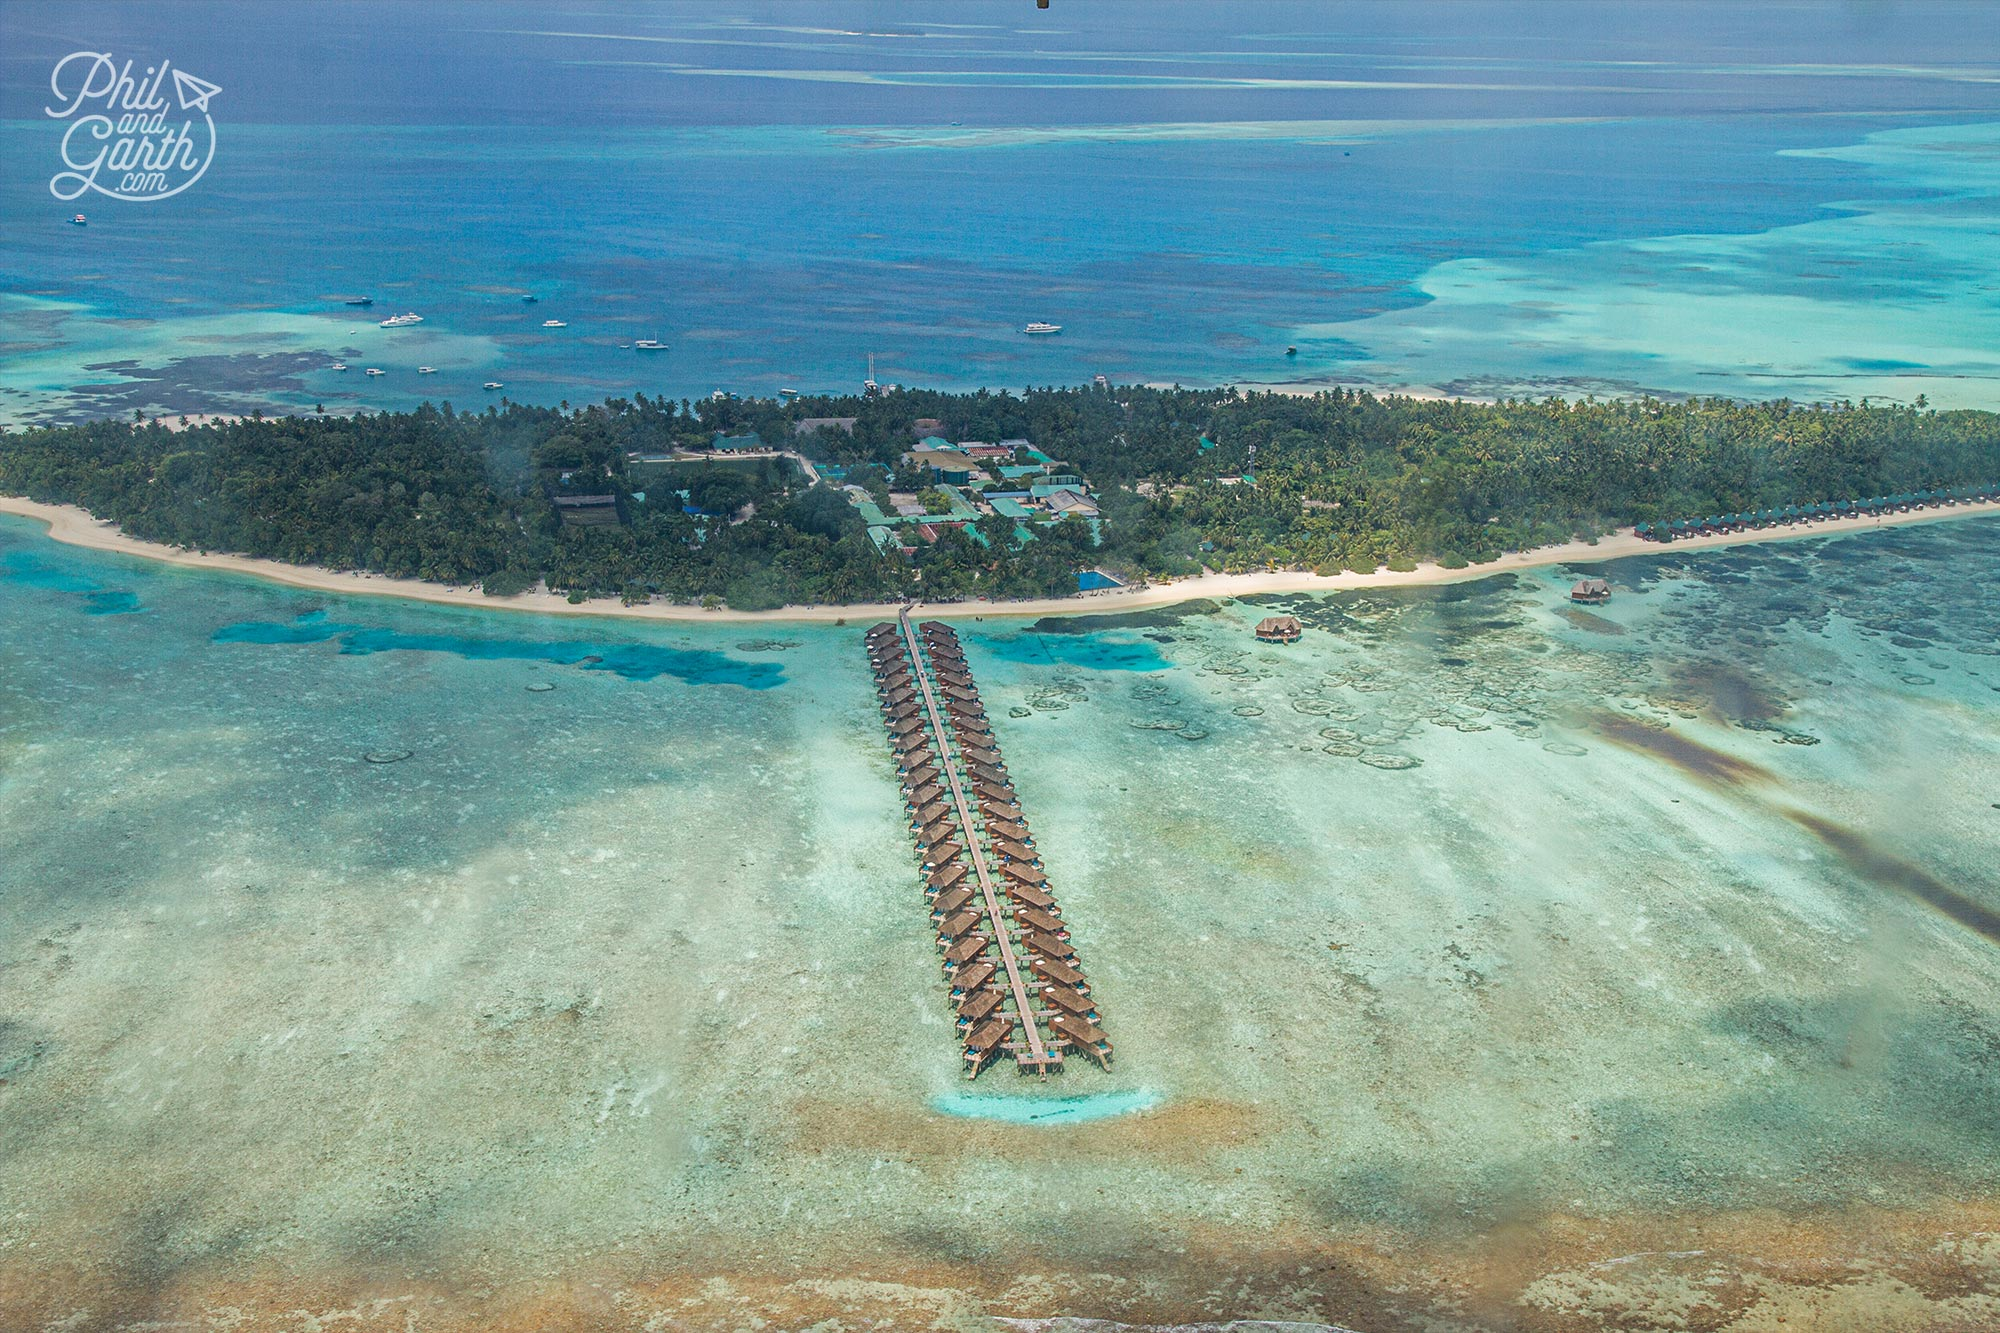 Great view of the Meeru Island Resort from our seaplane sightseeing excursion